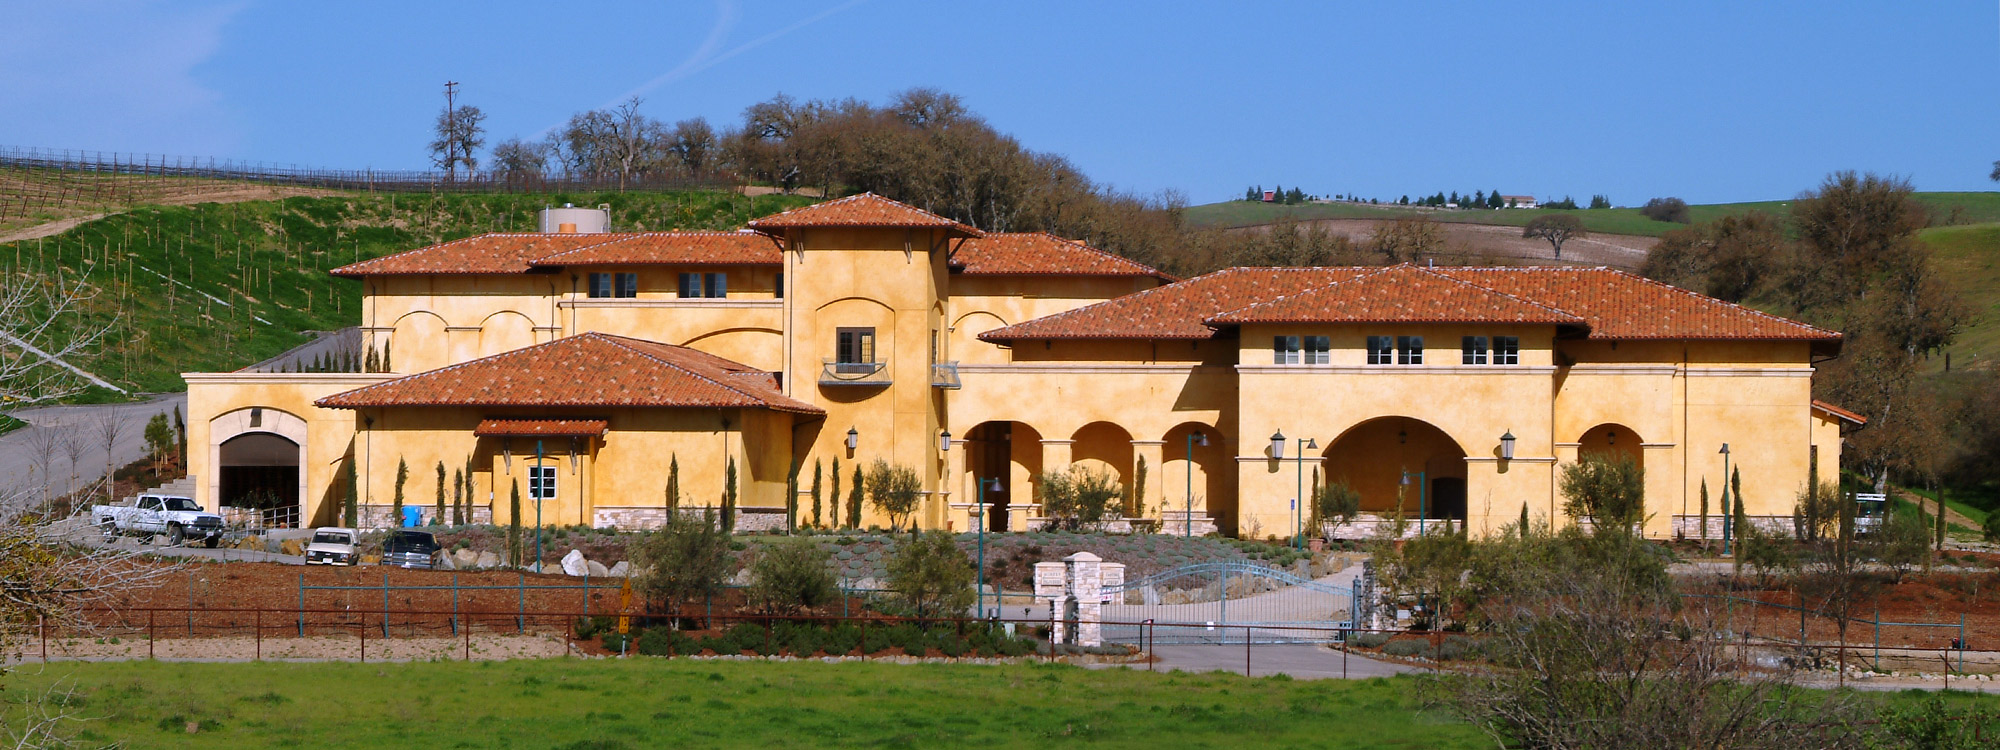 Paso Robles Construction Firm - Winery Construction and Developement - JW Design & Construction